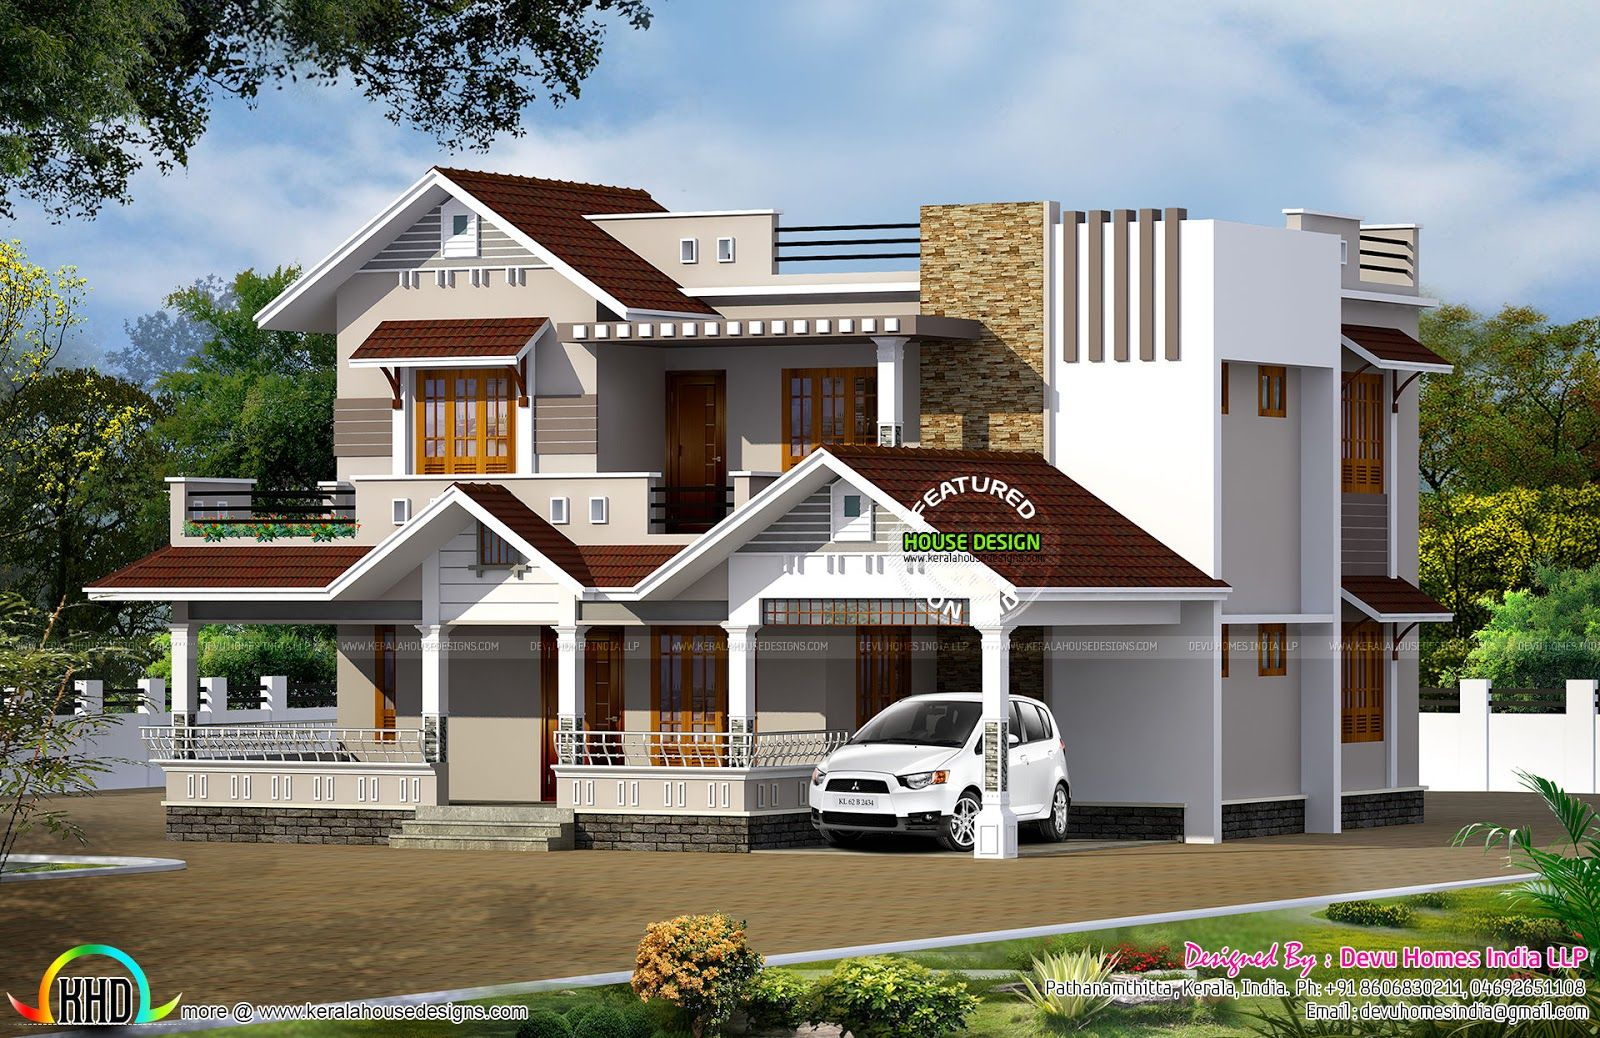 4 Bedroom Mixed Roof Home Part - 24: 2370 Square Feet Mixed Roof Modern 4 Bedroom House Plan By Devu Homes India  LLP From Pathanamthitta, Kerala.